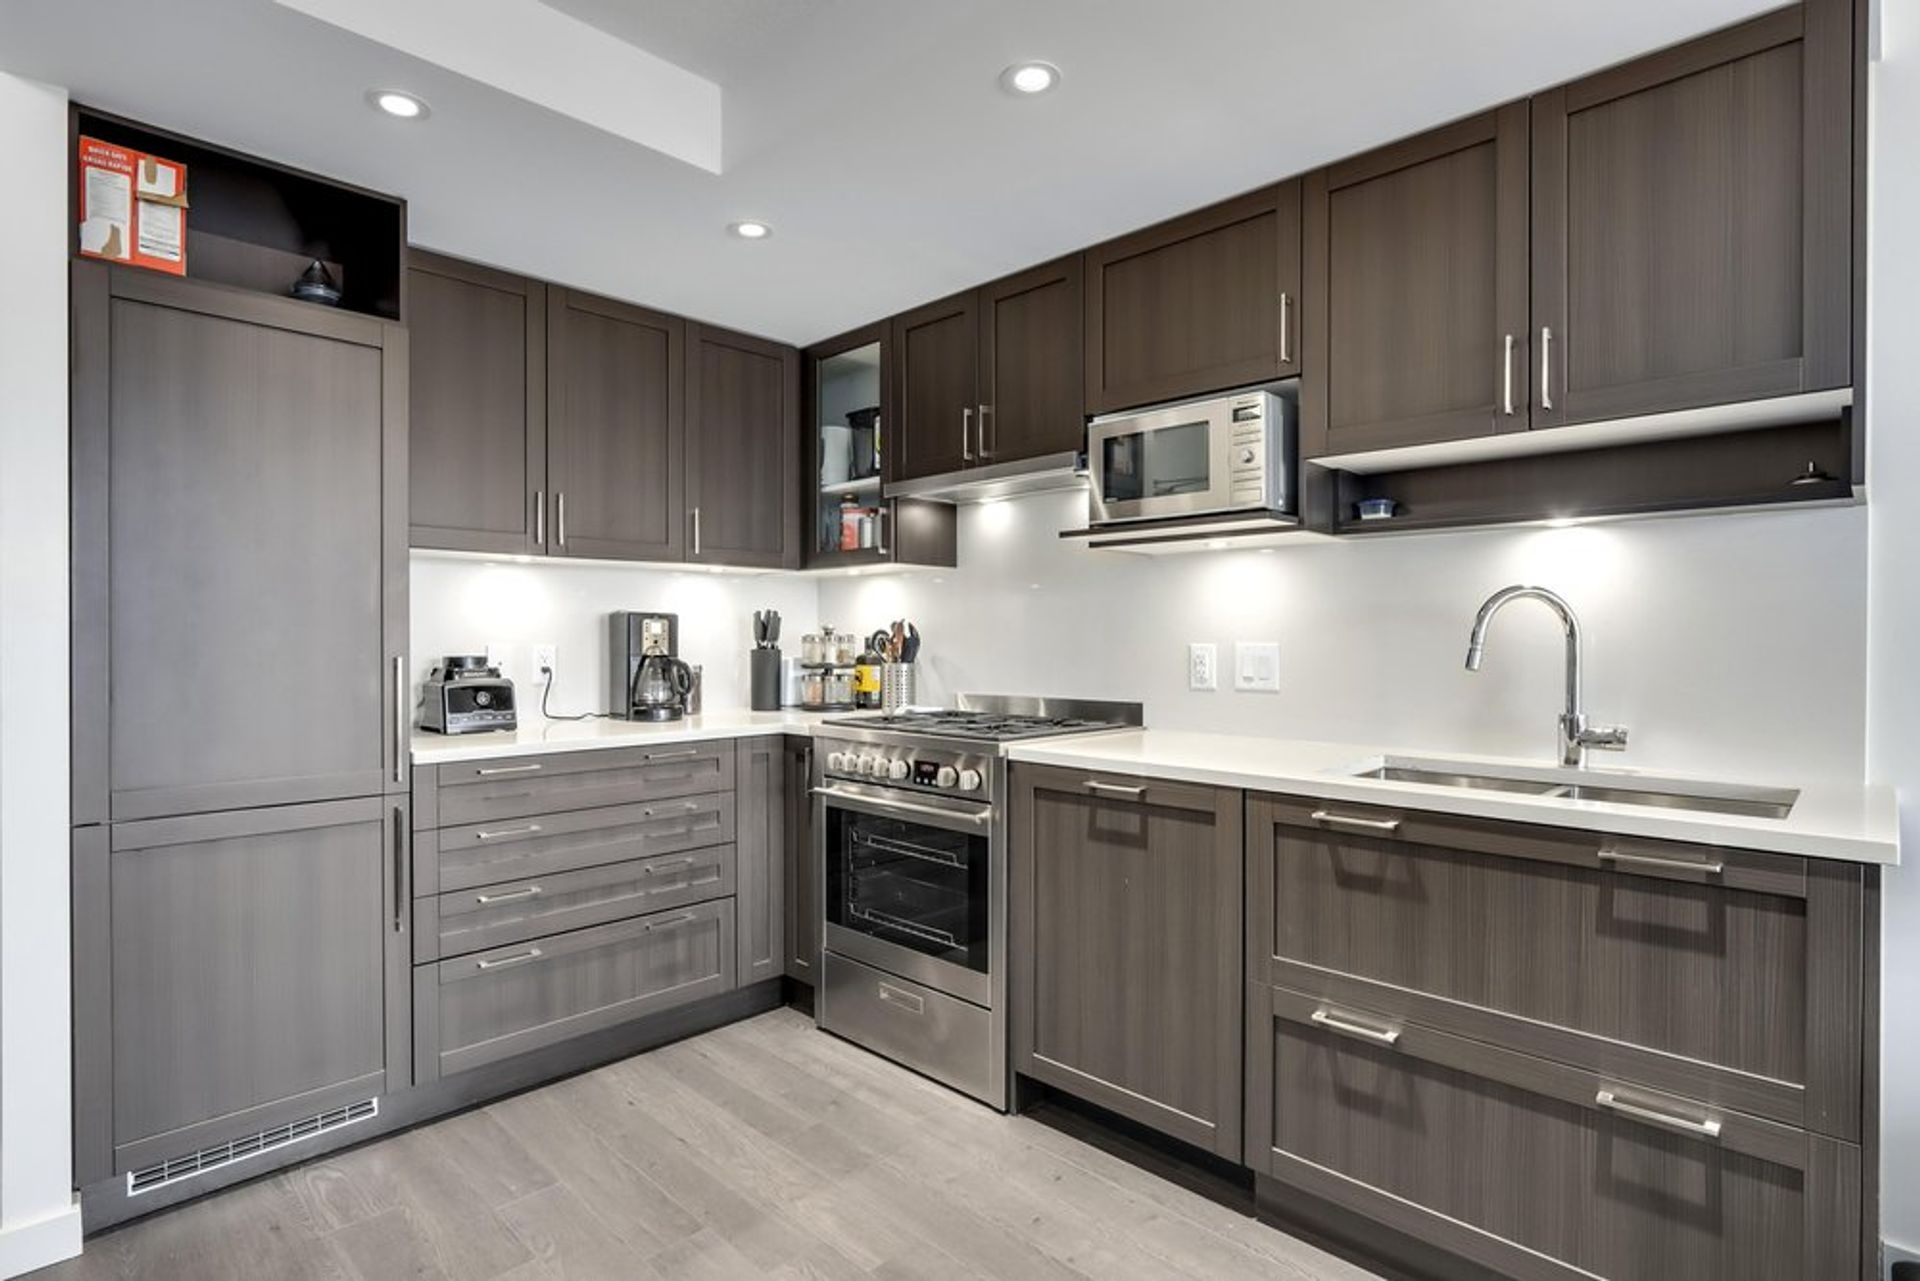 kitchen with integrated fridge and dishwasher at 1103 - 5470 Ormidale Street, Collingwood VE, Vancouver East